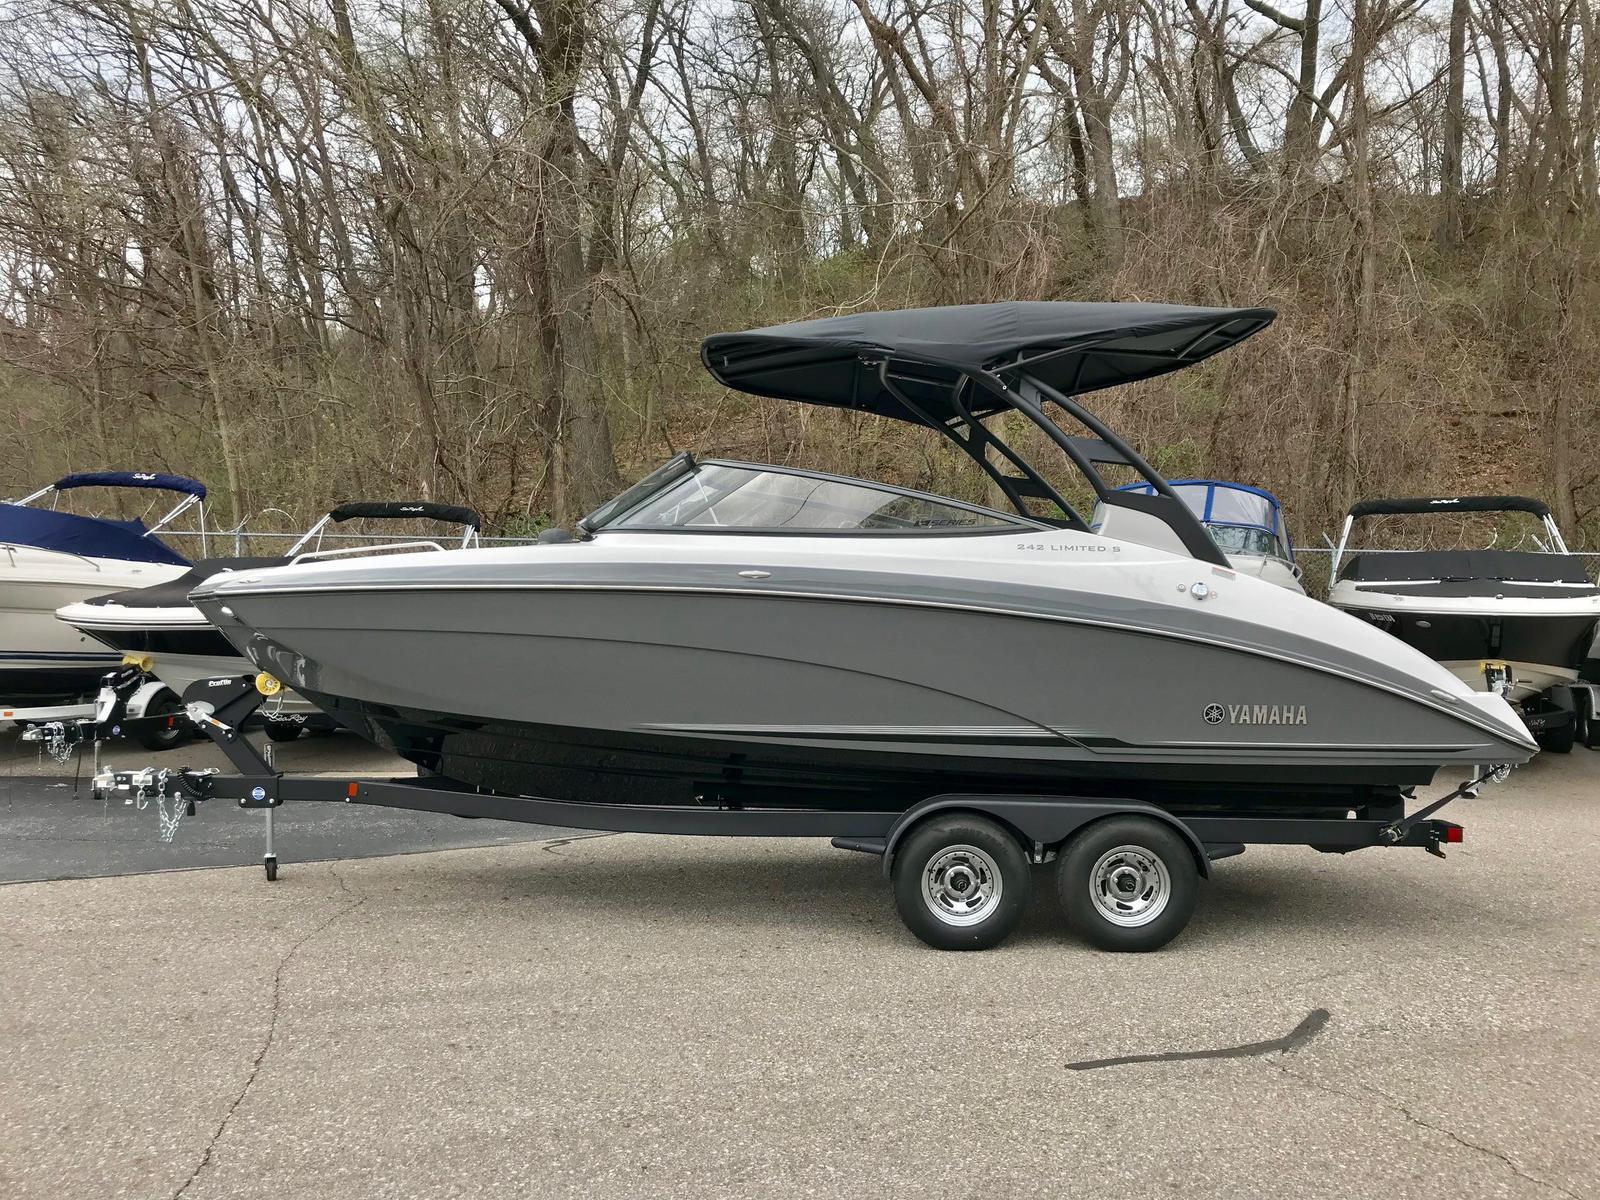 2019 Yamaha boat for sale, model of the boat is 242 Limited S E-Series & Image # 1 of 9